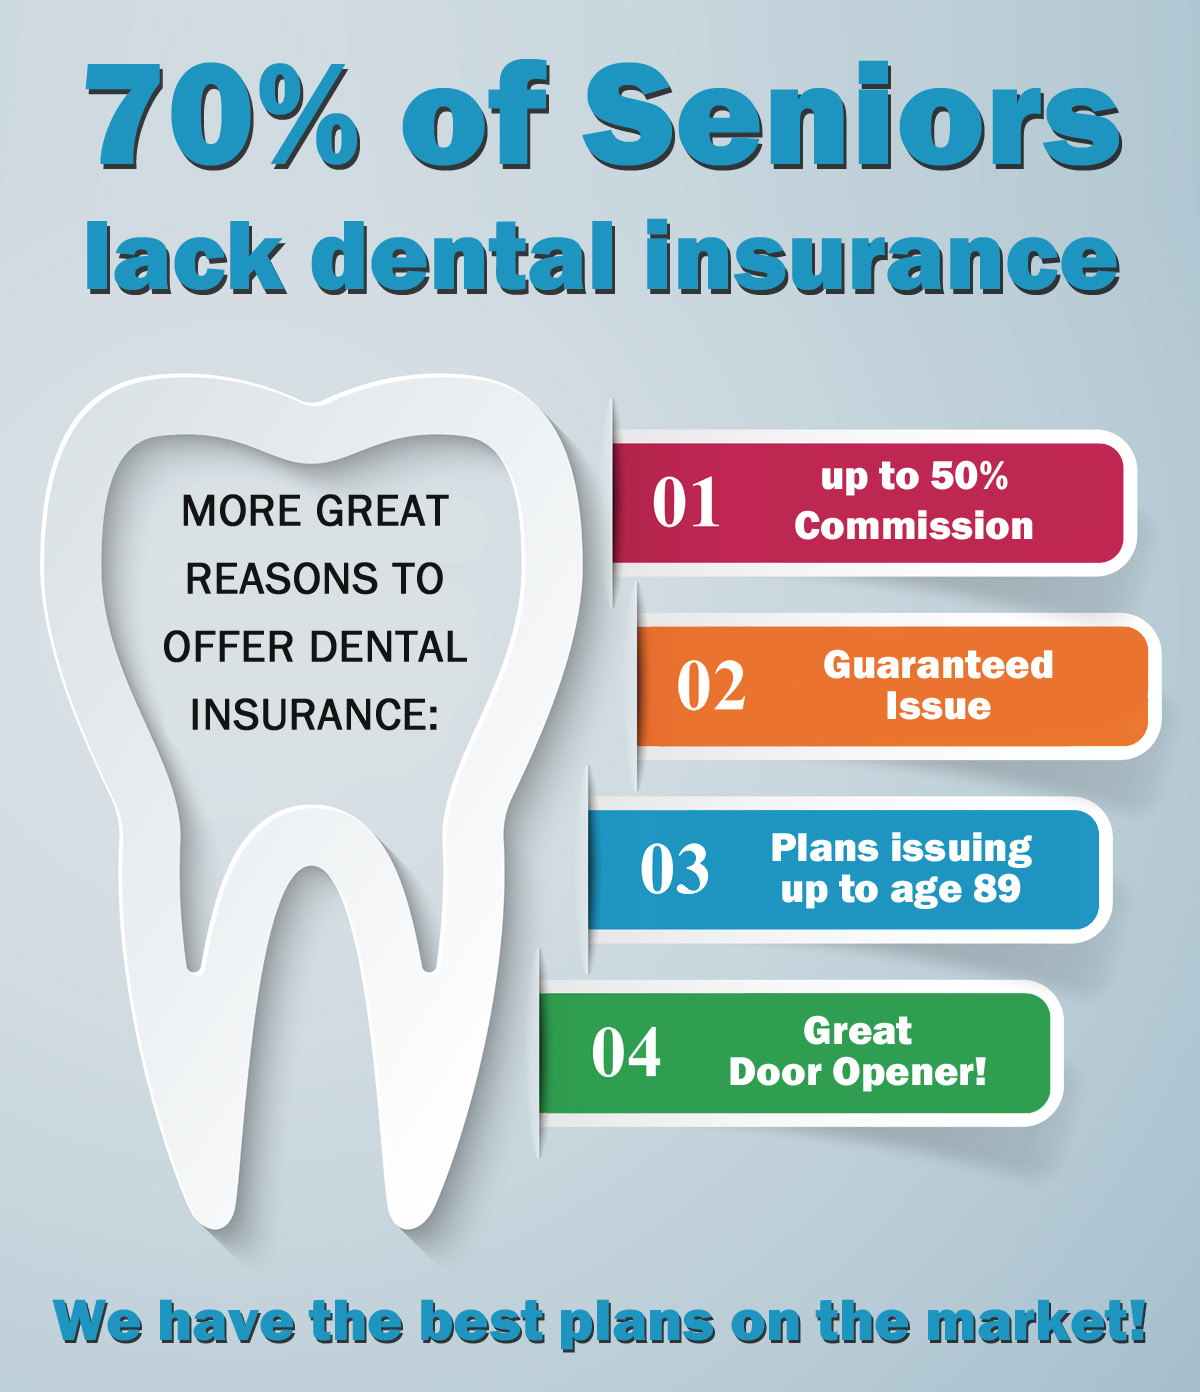 Seniors-Lack-Dental-Insurance.jpg